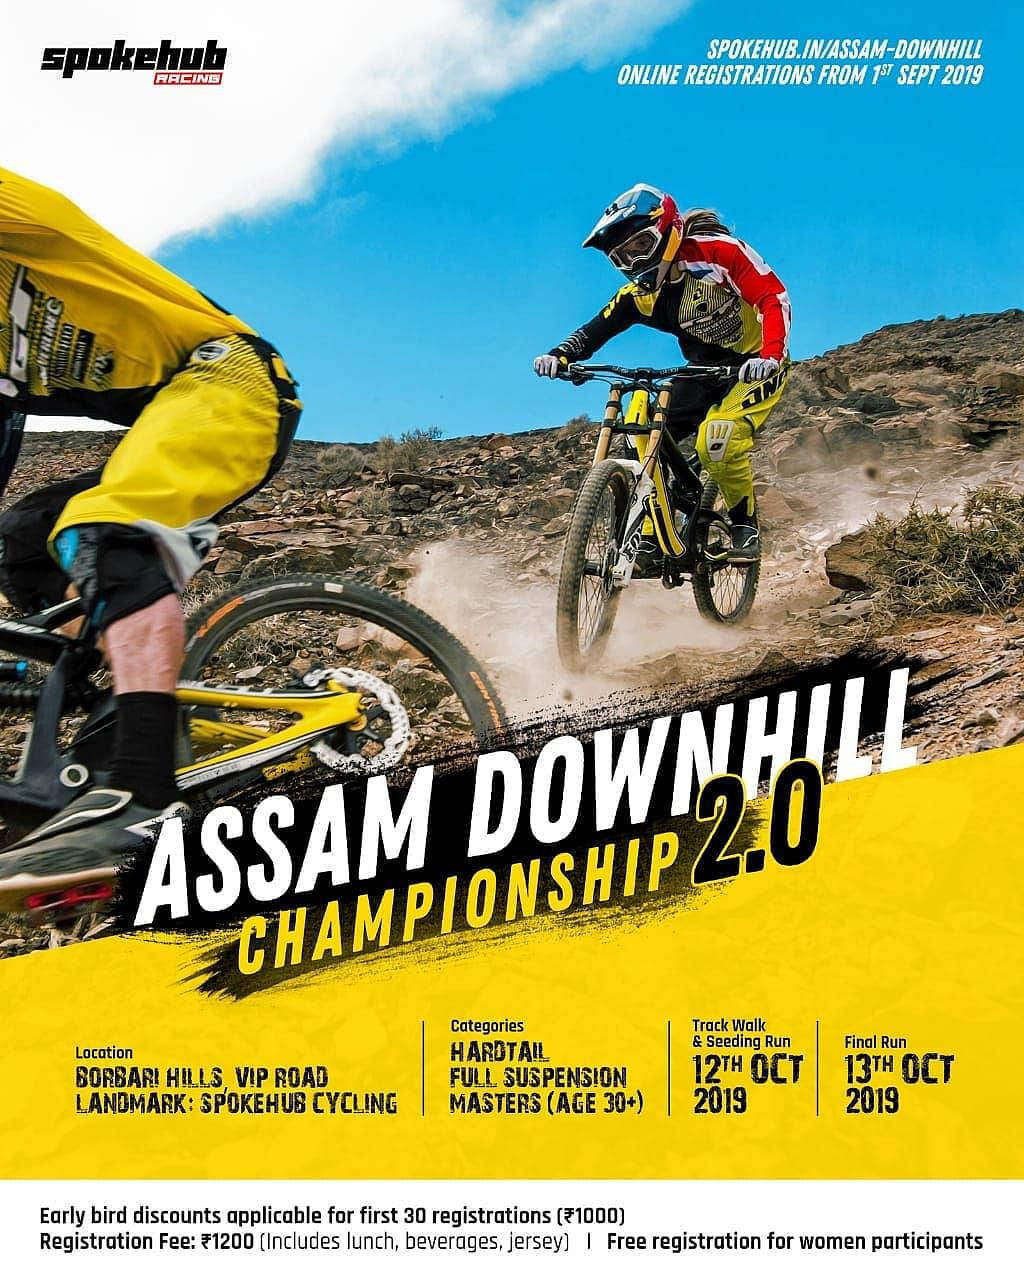 The second edition of Assam Downhill Championship 2.0 was held in Guwahati on October 12 and 13